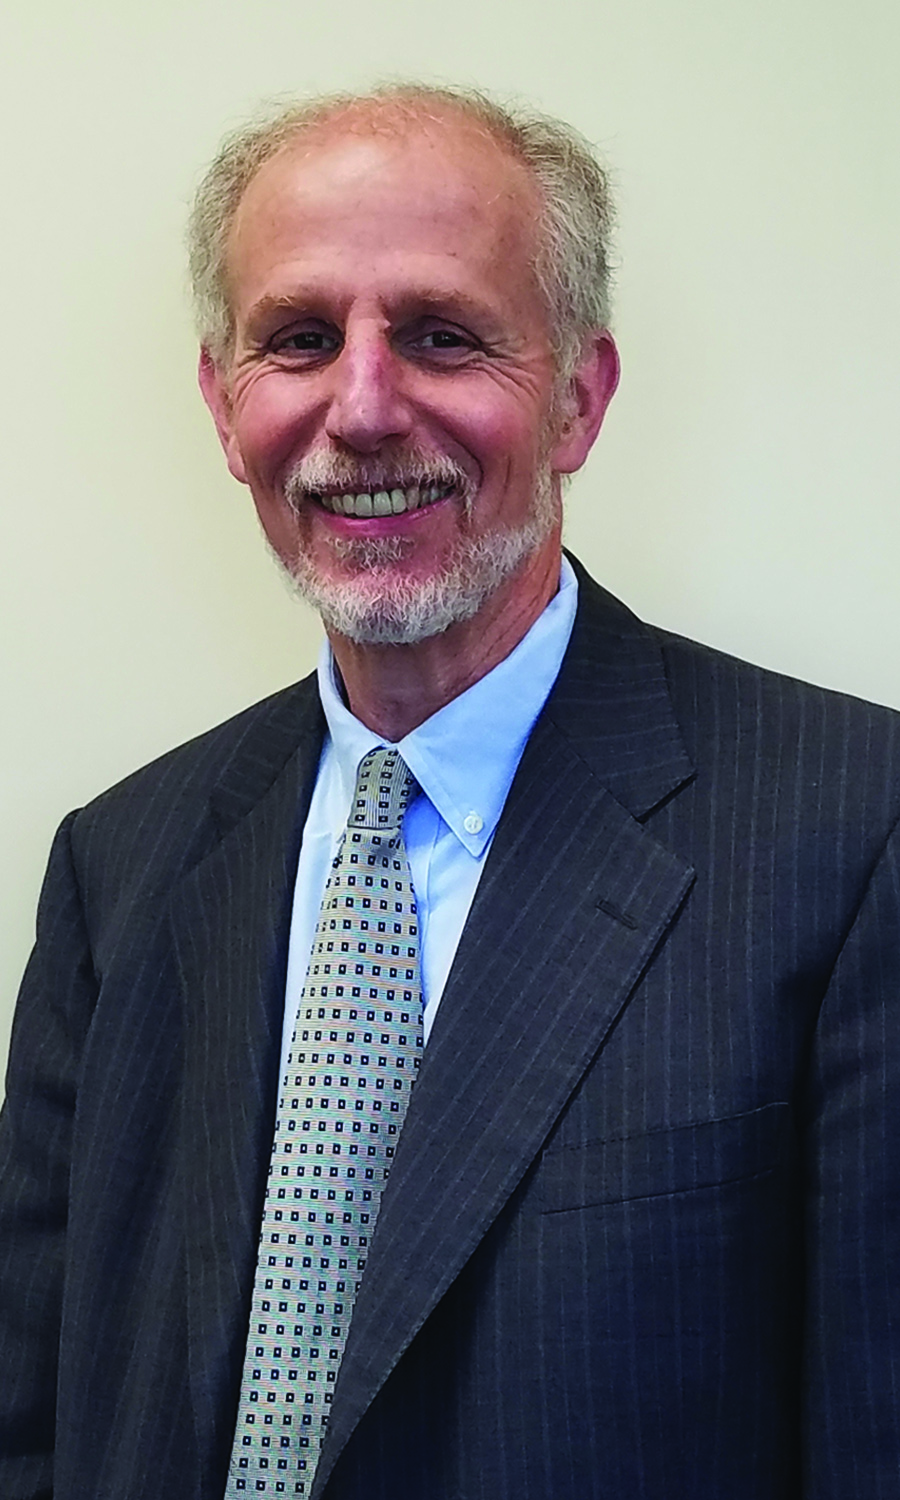 Paul D. Lantz Chief Operating Officer